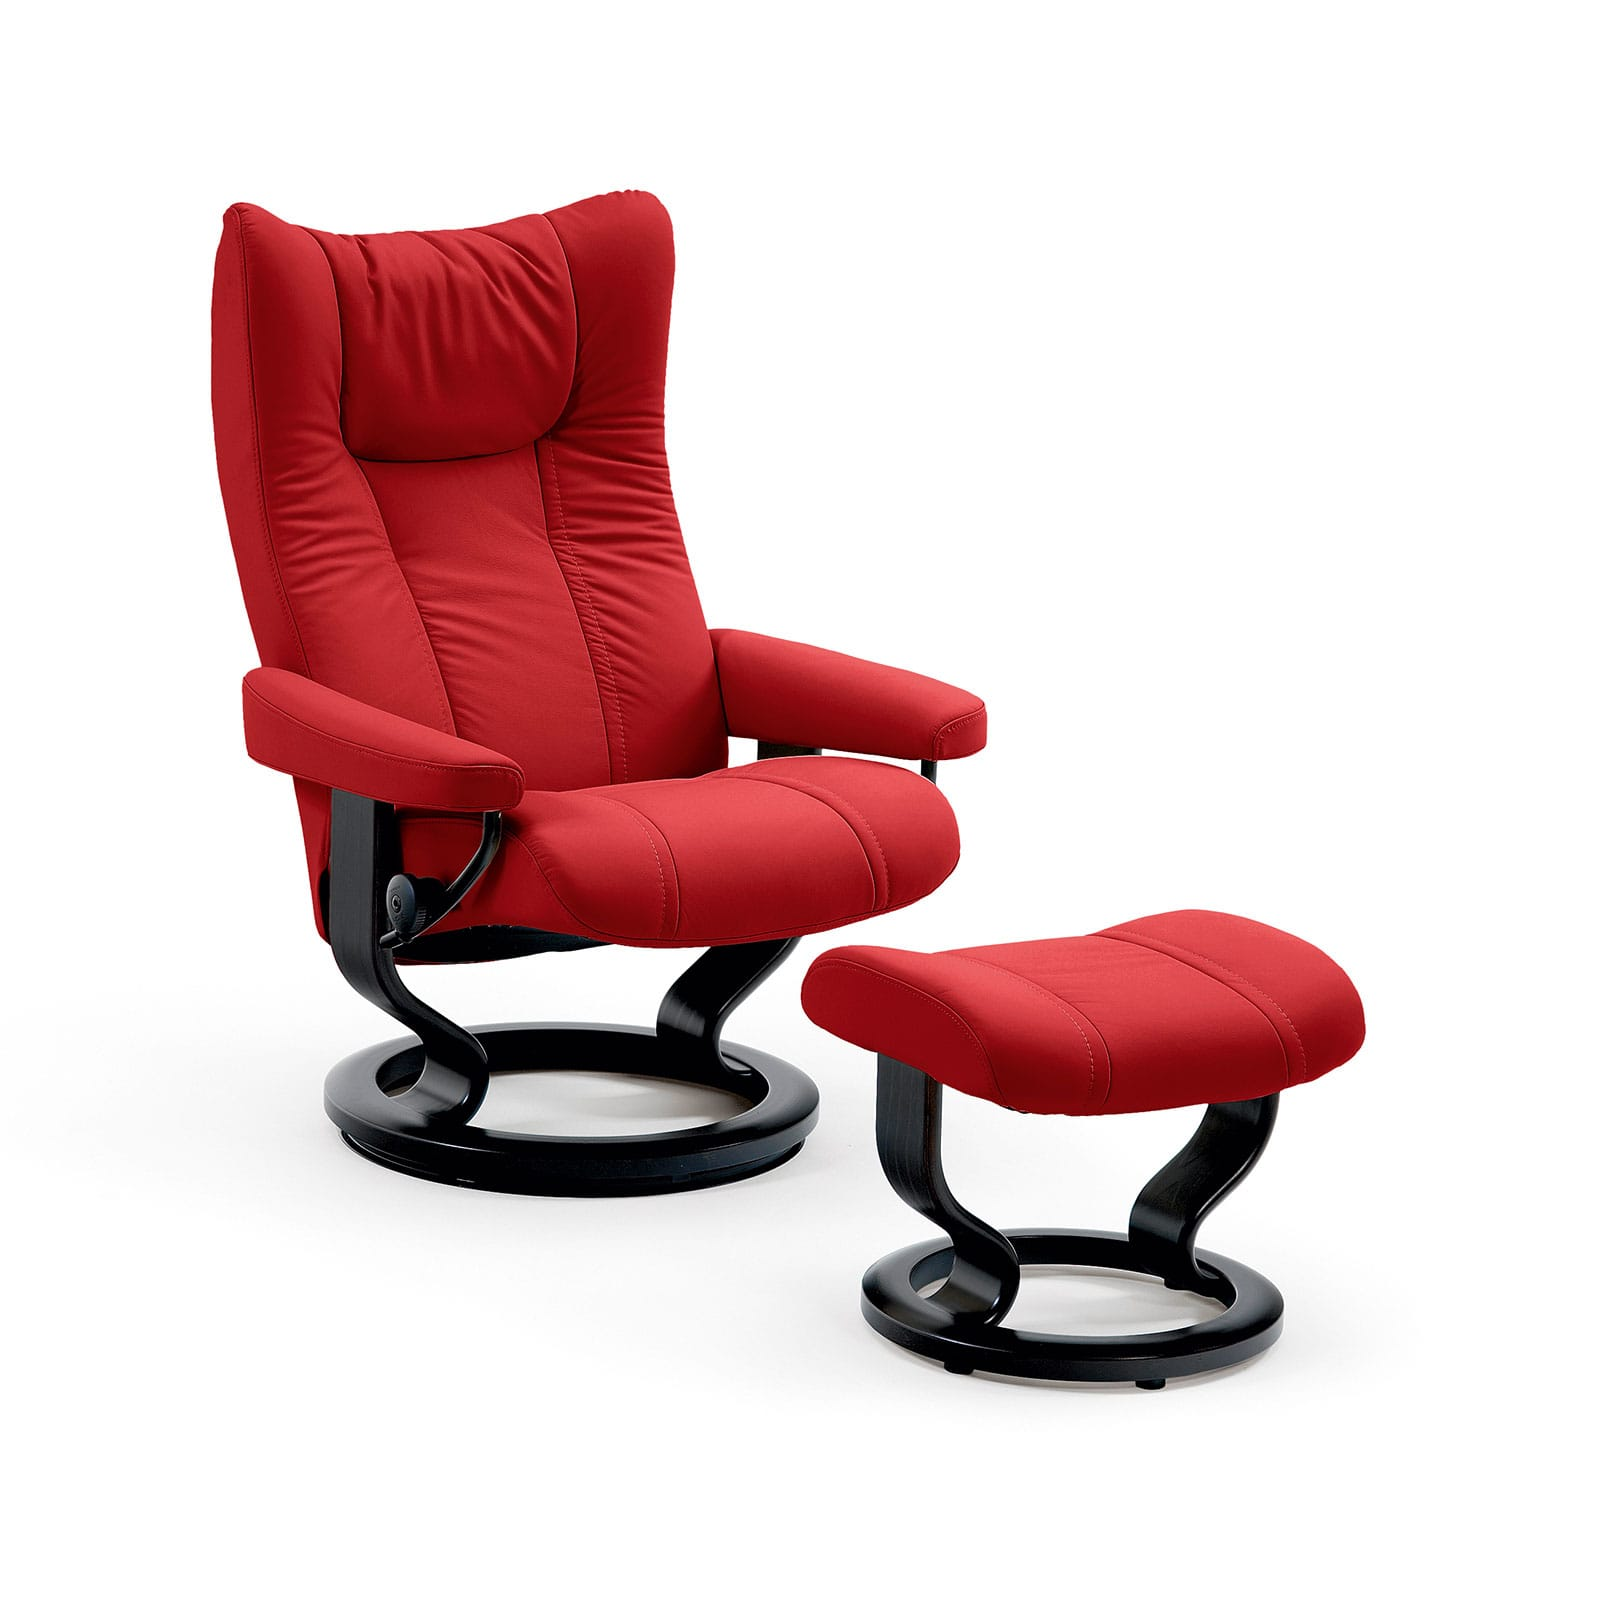 Stressless Sessel Mit Hocker Stressless Sessel Wing Leder Batick Chilli Red Mit Hocker